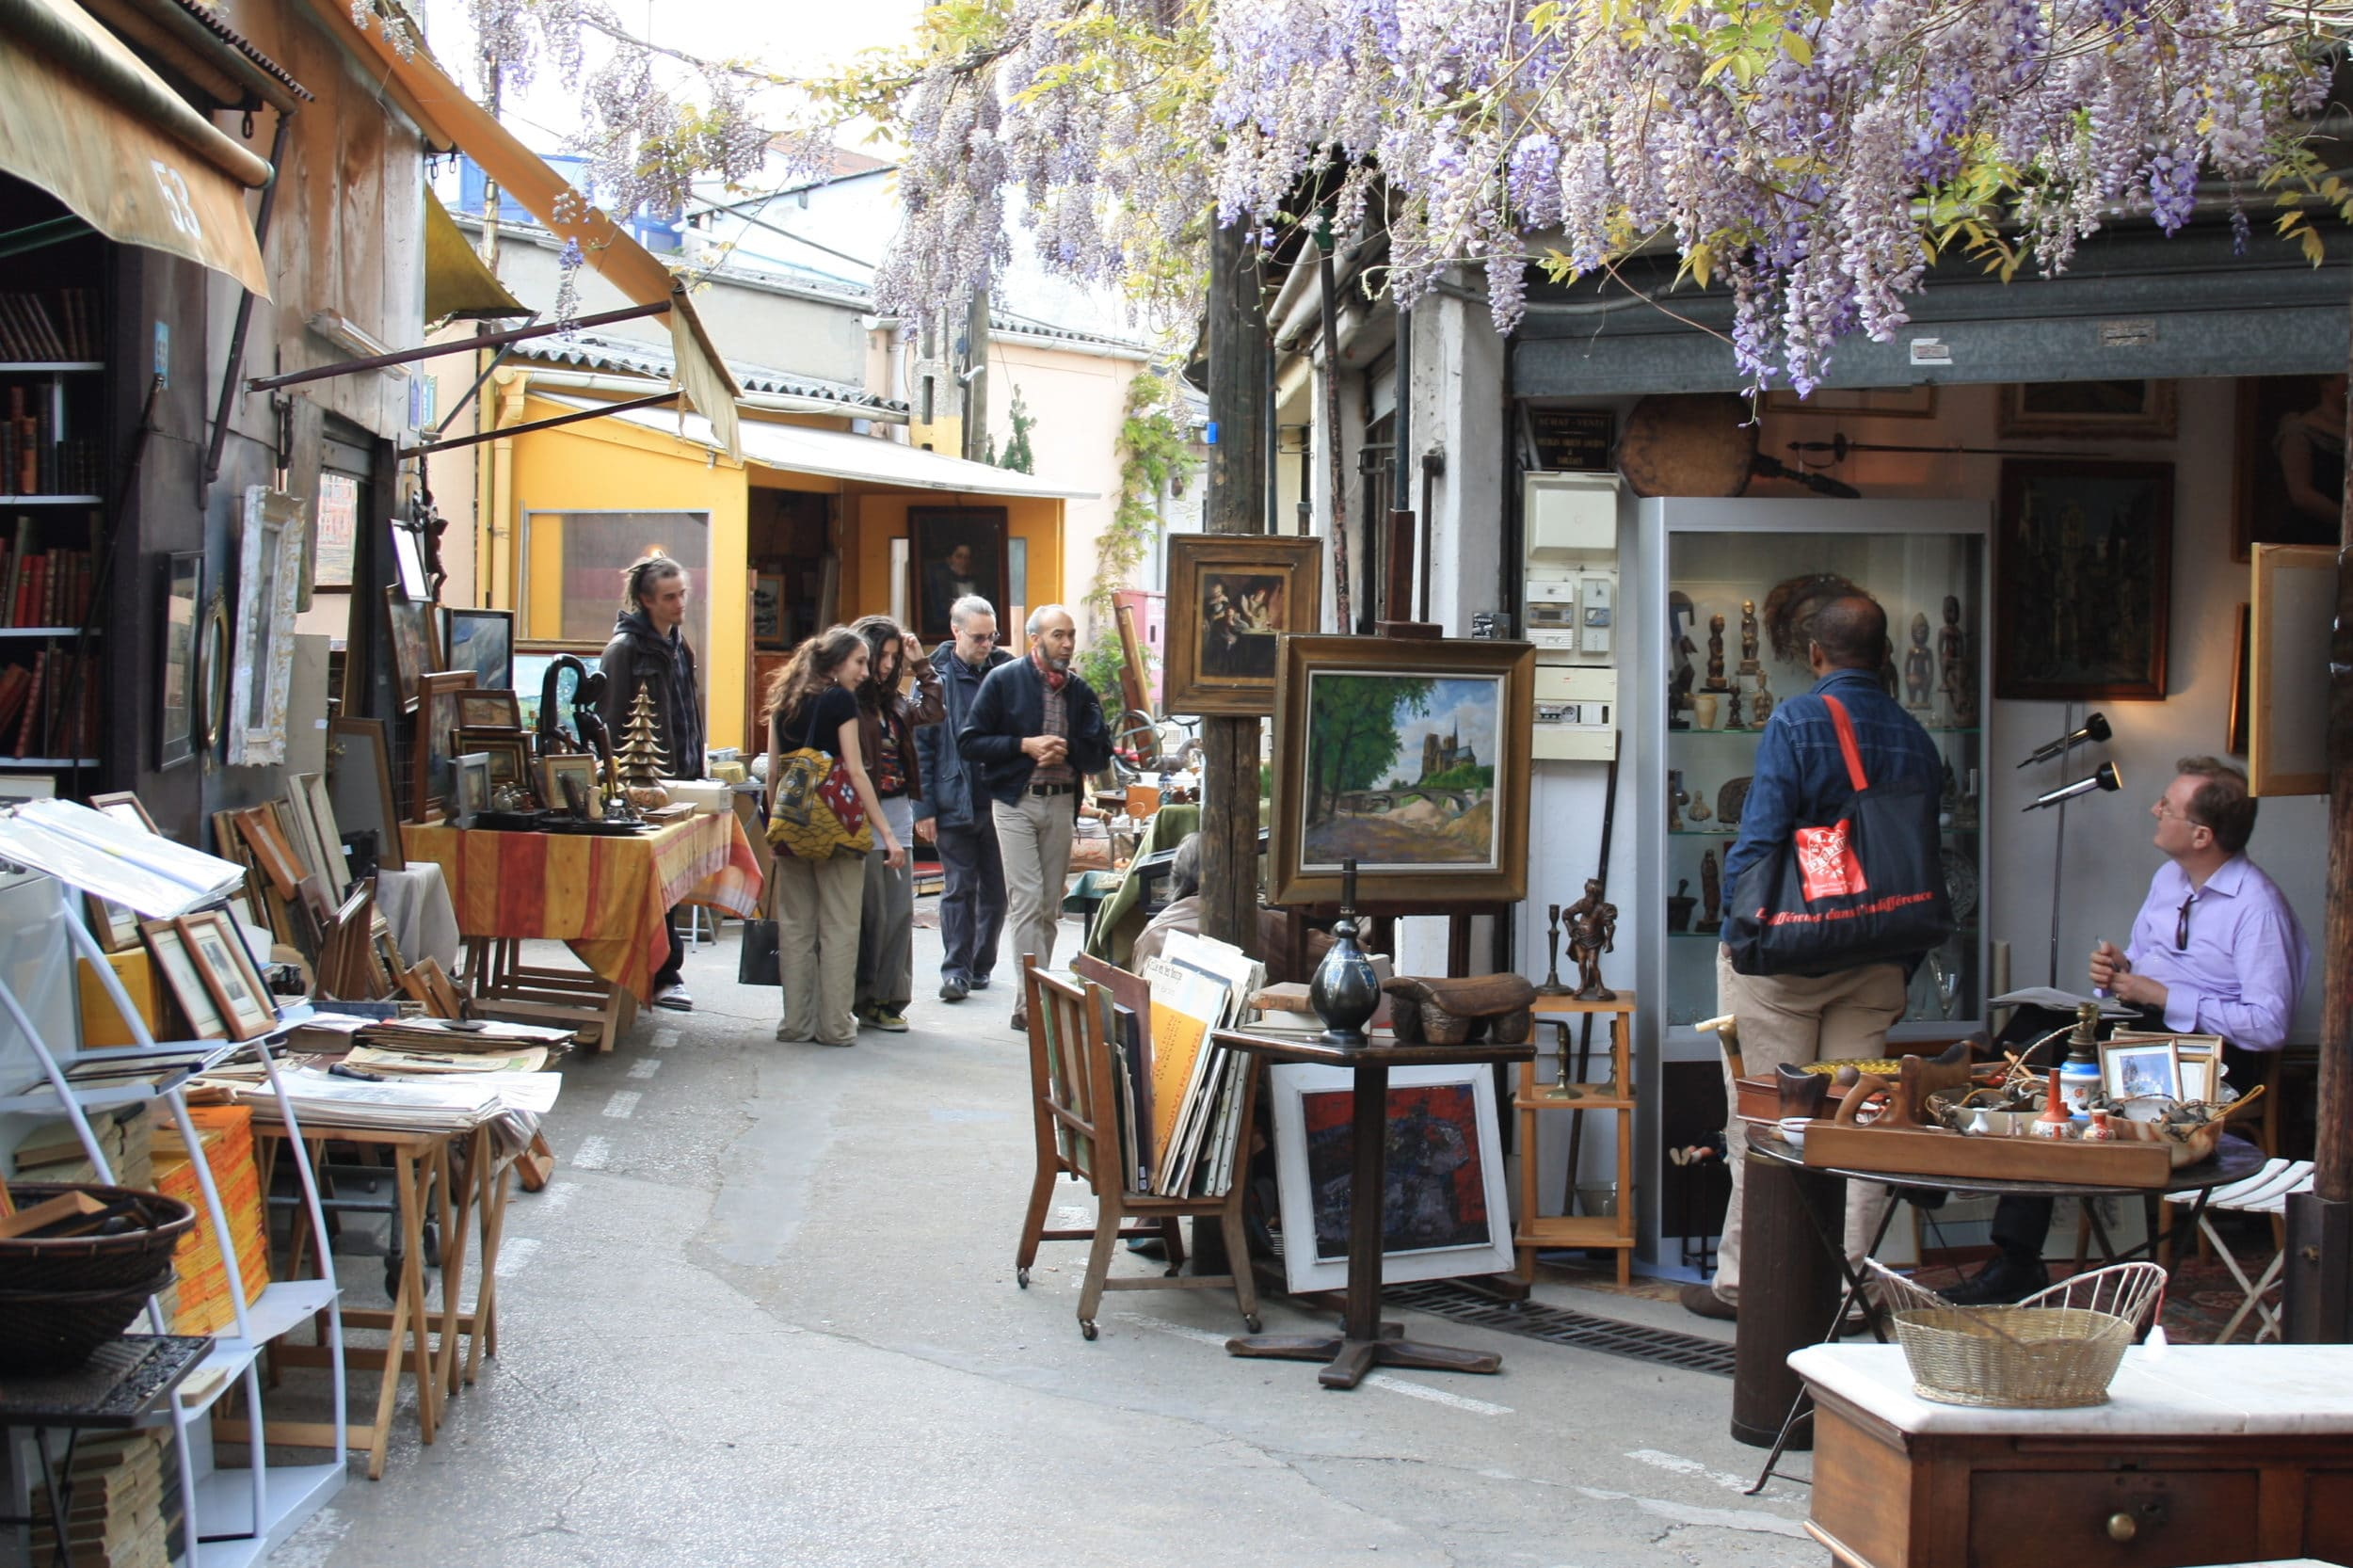 Things to do in Paris: Les Puces de Saint-Ouen